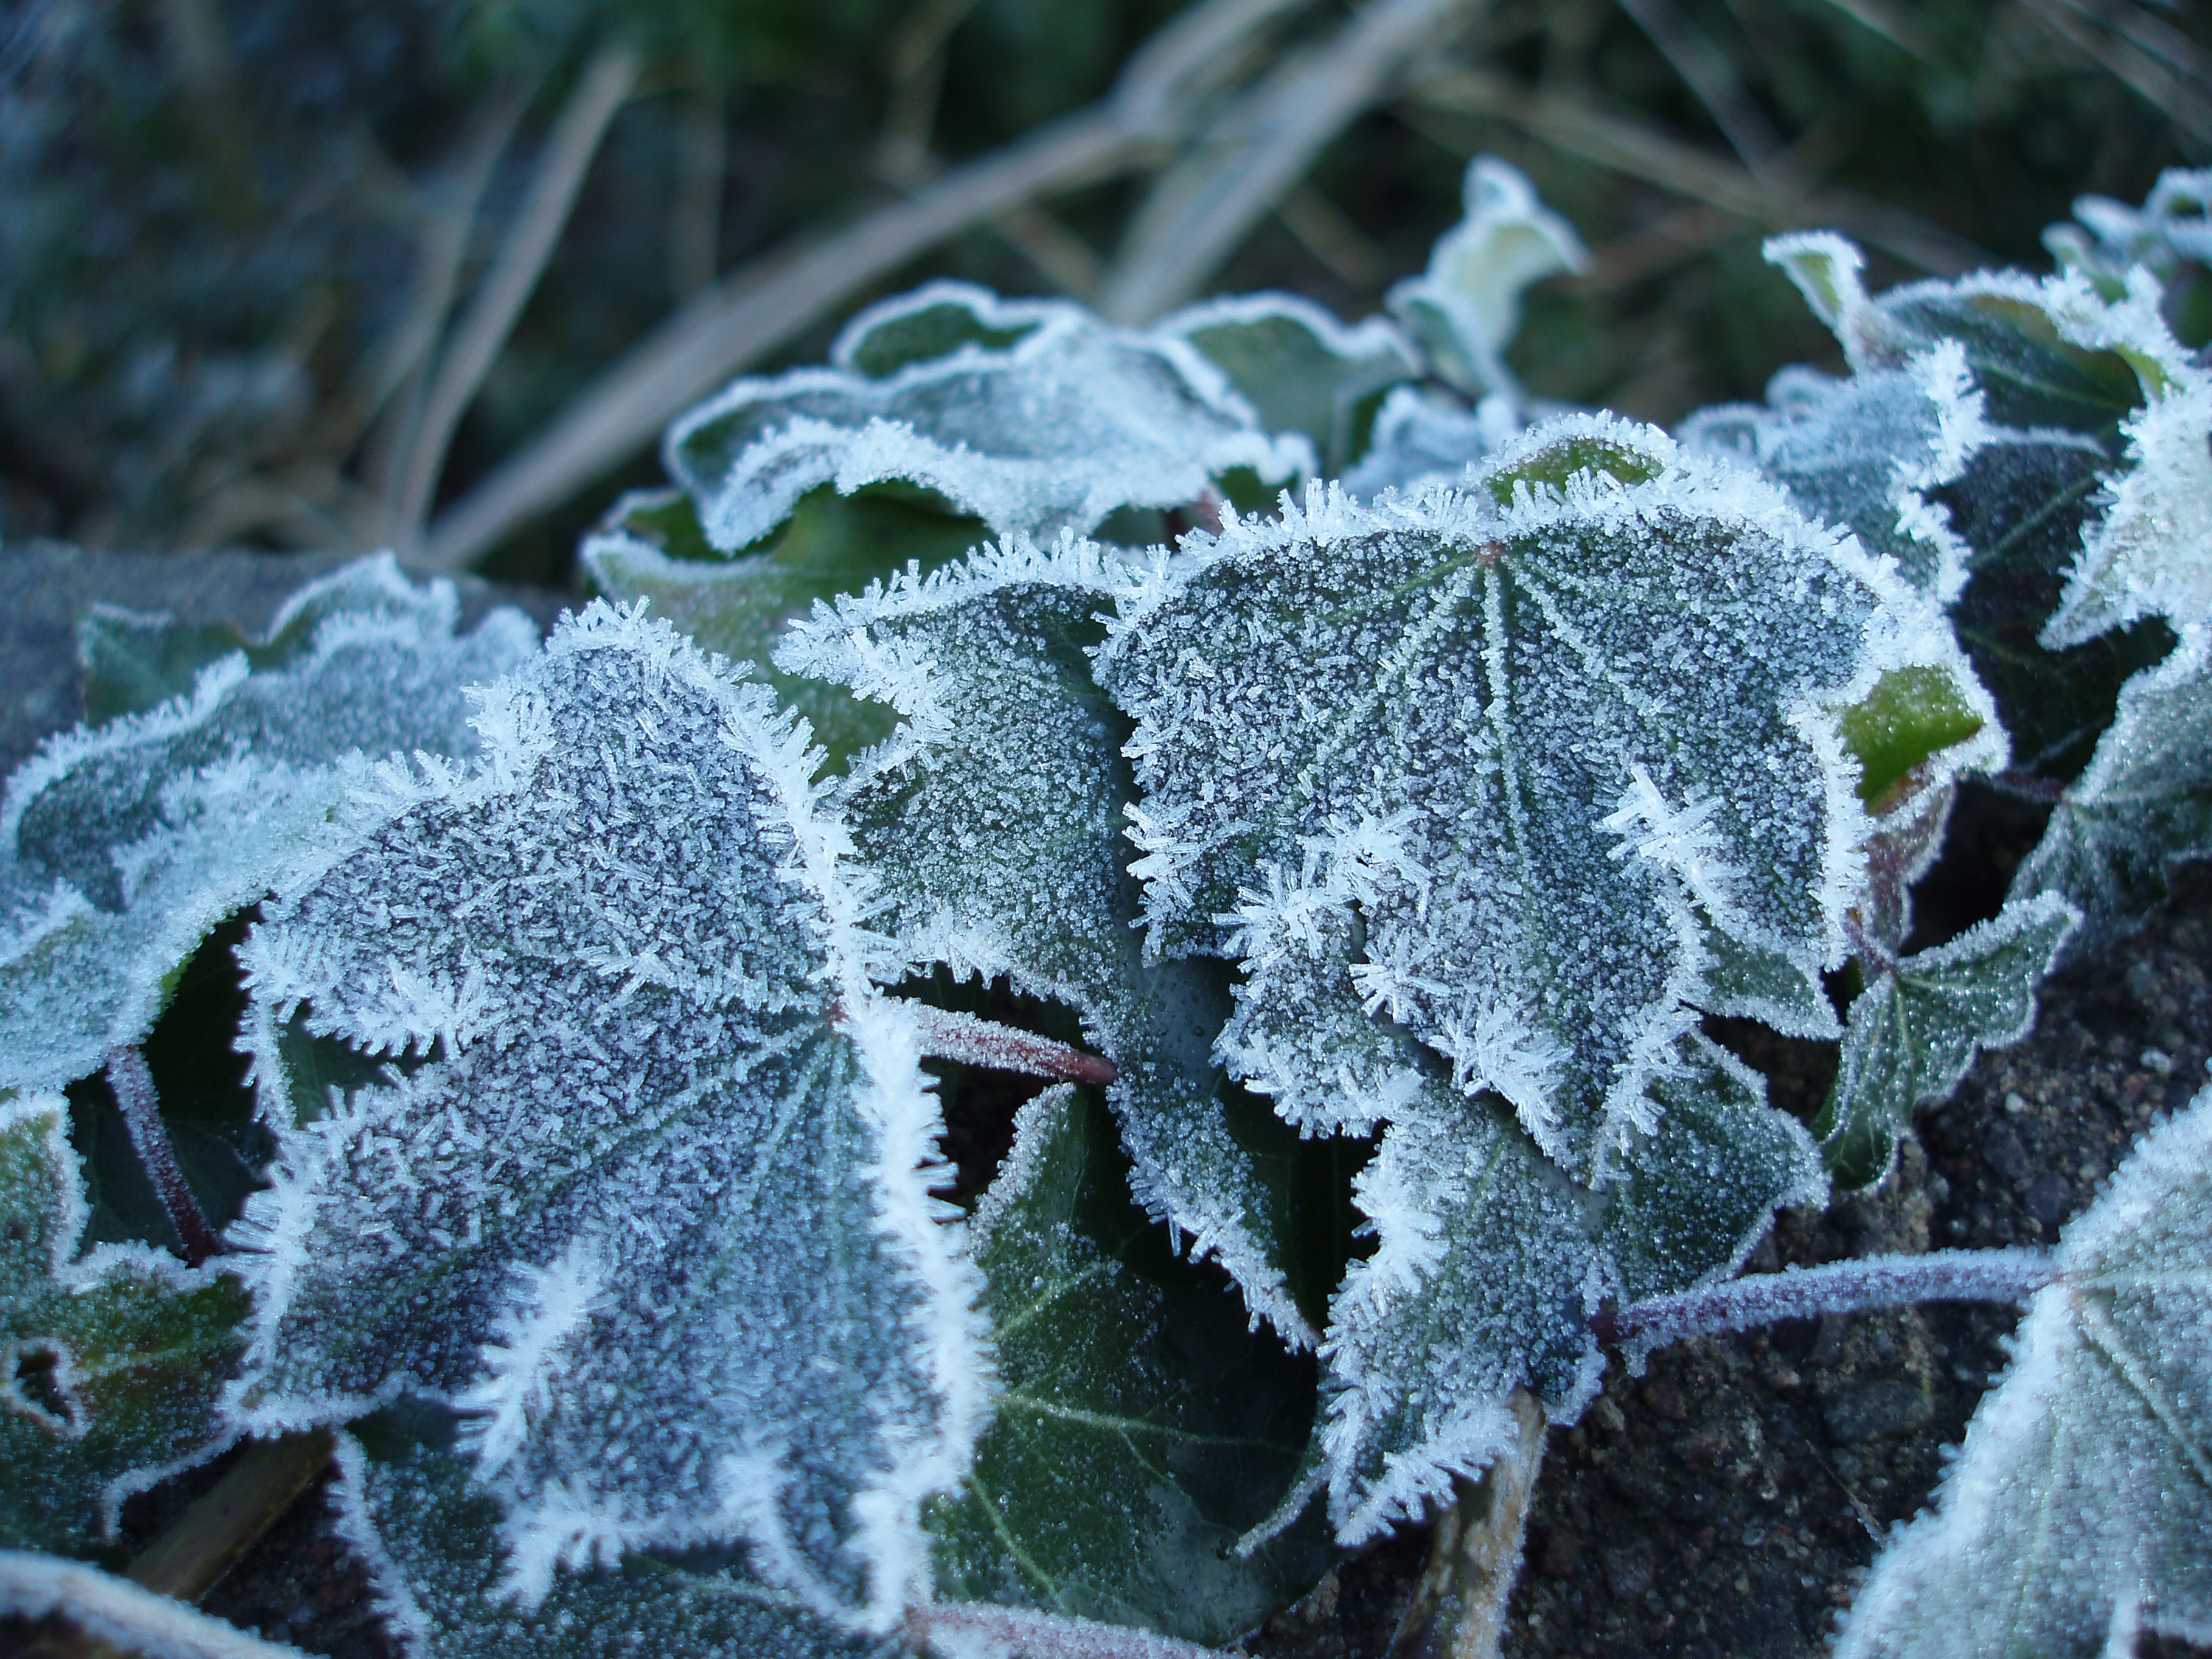 Hd Fall Winter Wallpaper Free Stock Photo 3456 Frozen Ivy Leaves Freeimageslive